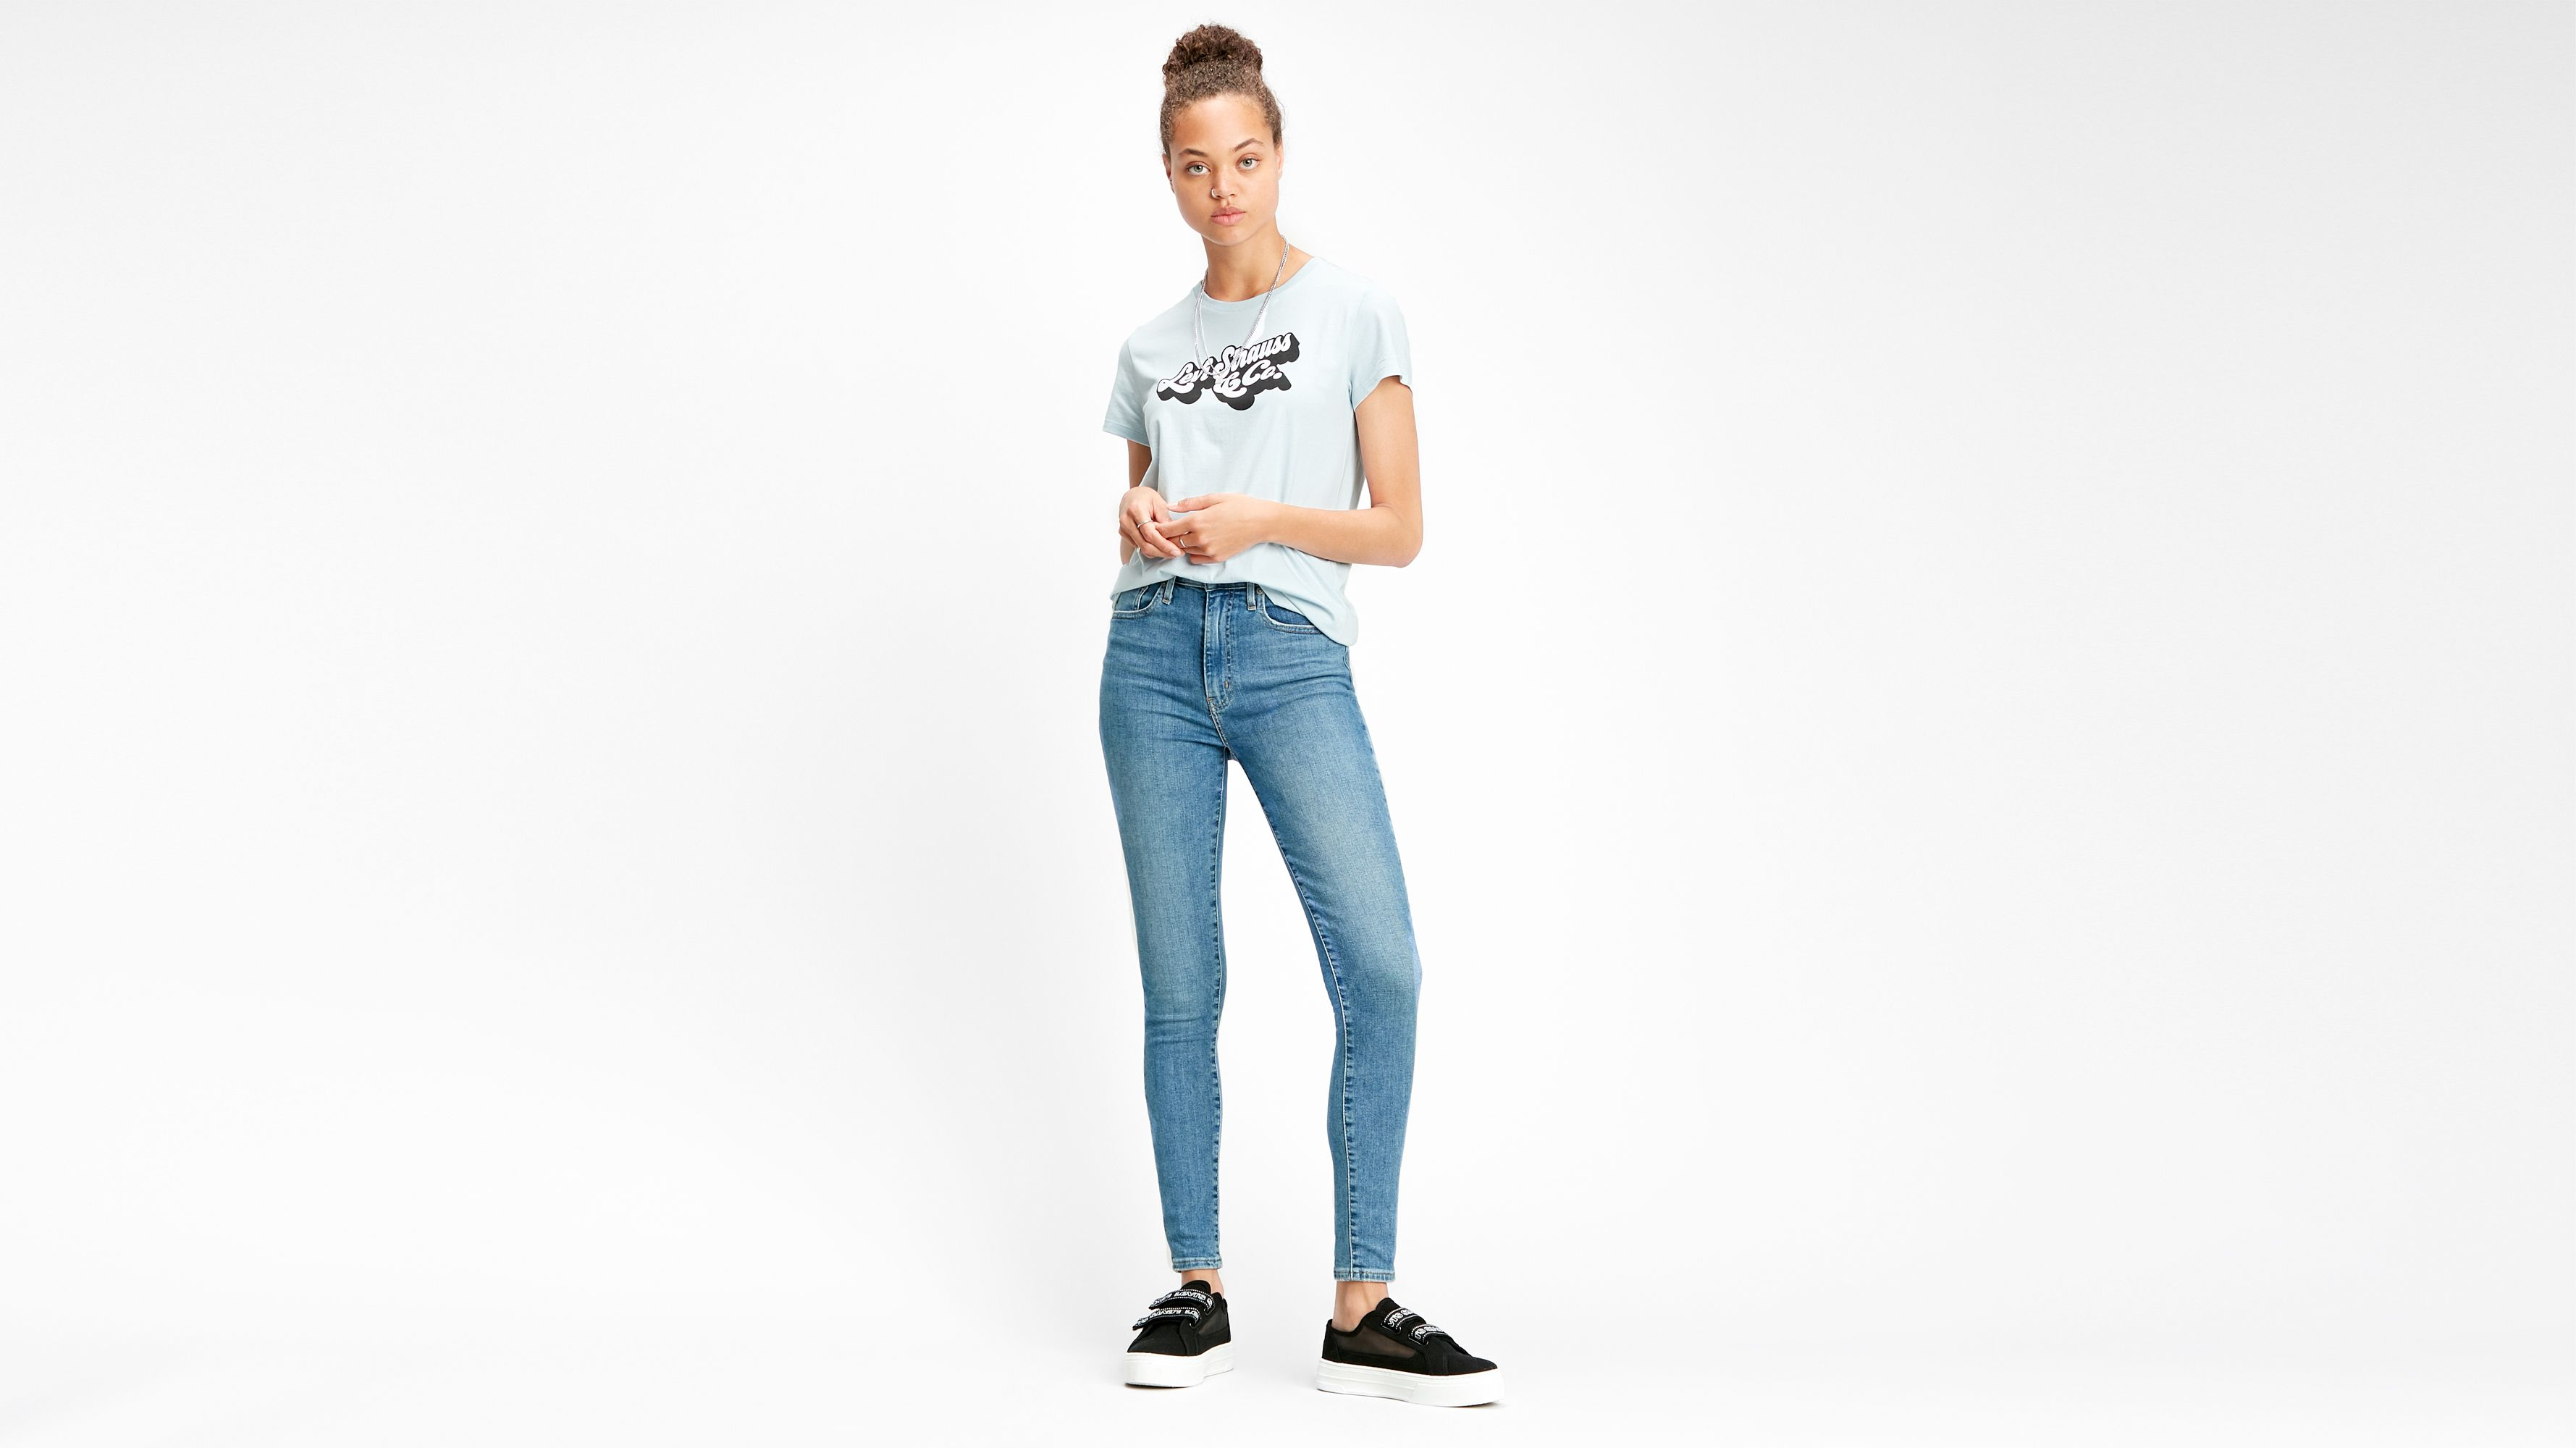 Baggy Women's Jeans Light Wash | Levi's® US in 2020 | High